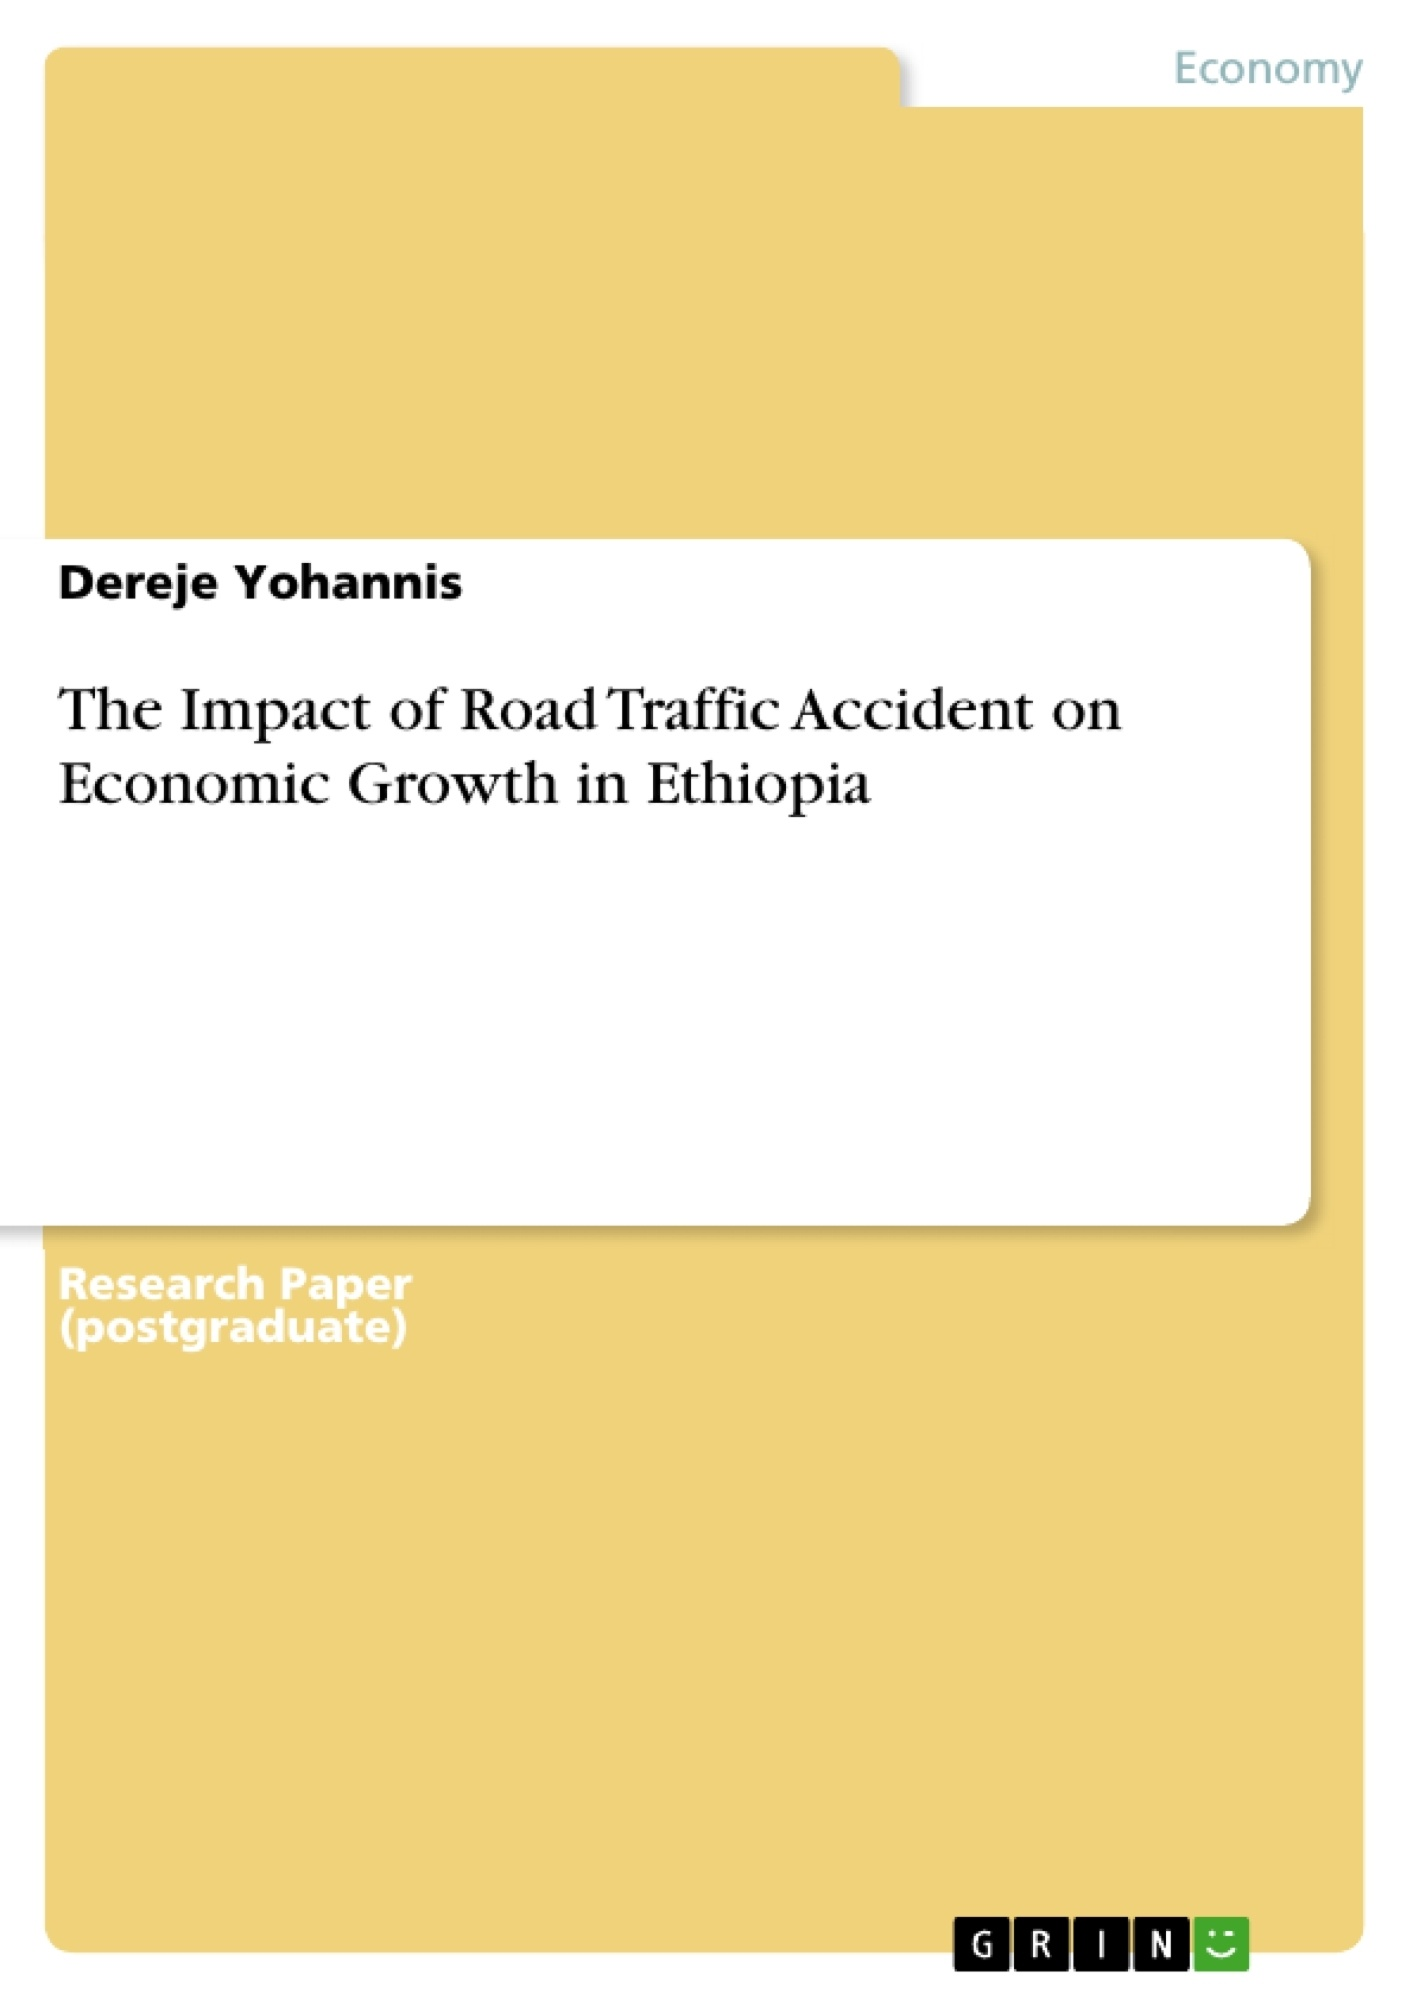 Title: The Impact of Road Traffic Accident on Economic Growth in Ethiopia